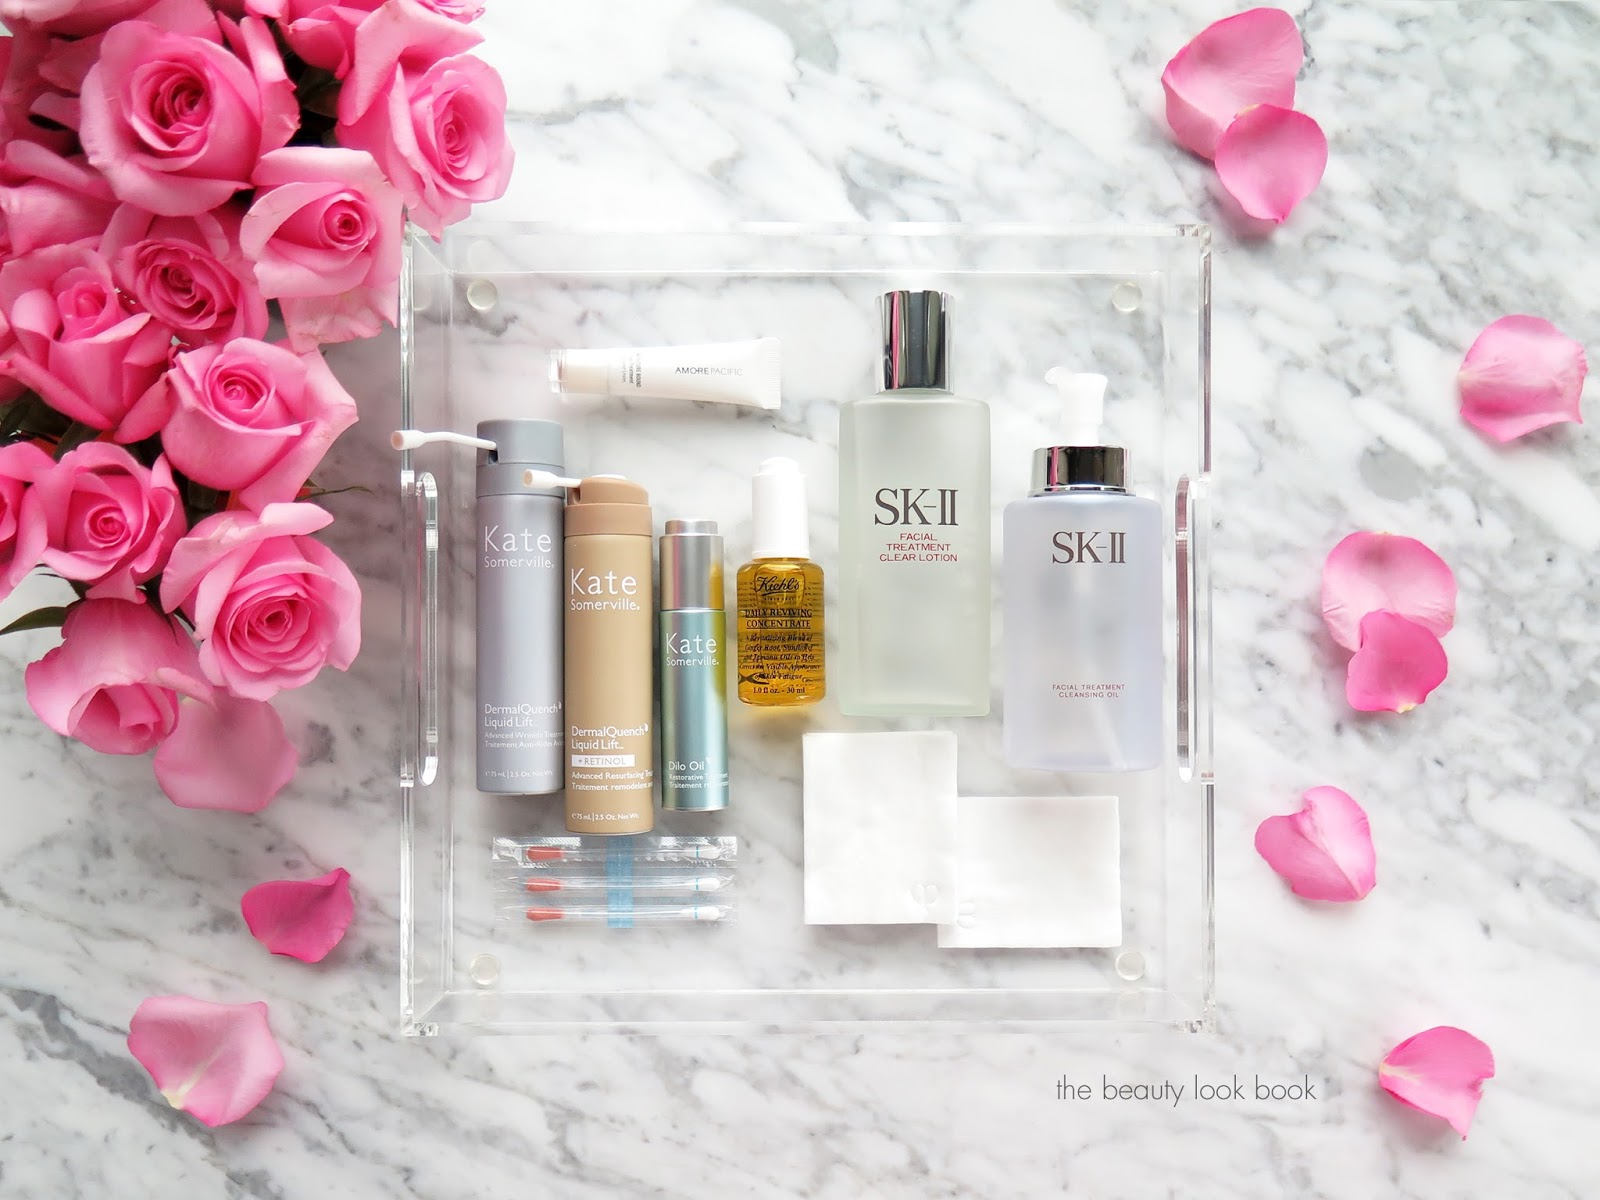 Sk Ii Archives The Beauty Look Book Facial Treatment Clear Lotion 10 Ml Today Ive Teamed Up With Nordstrom To Share A Roundup Of My Favorite Tried And True Skincare Products For Spring Ones That I Find Particularly Good